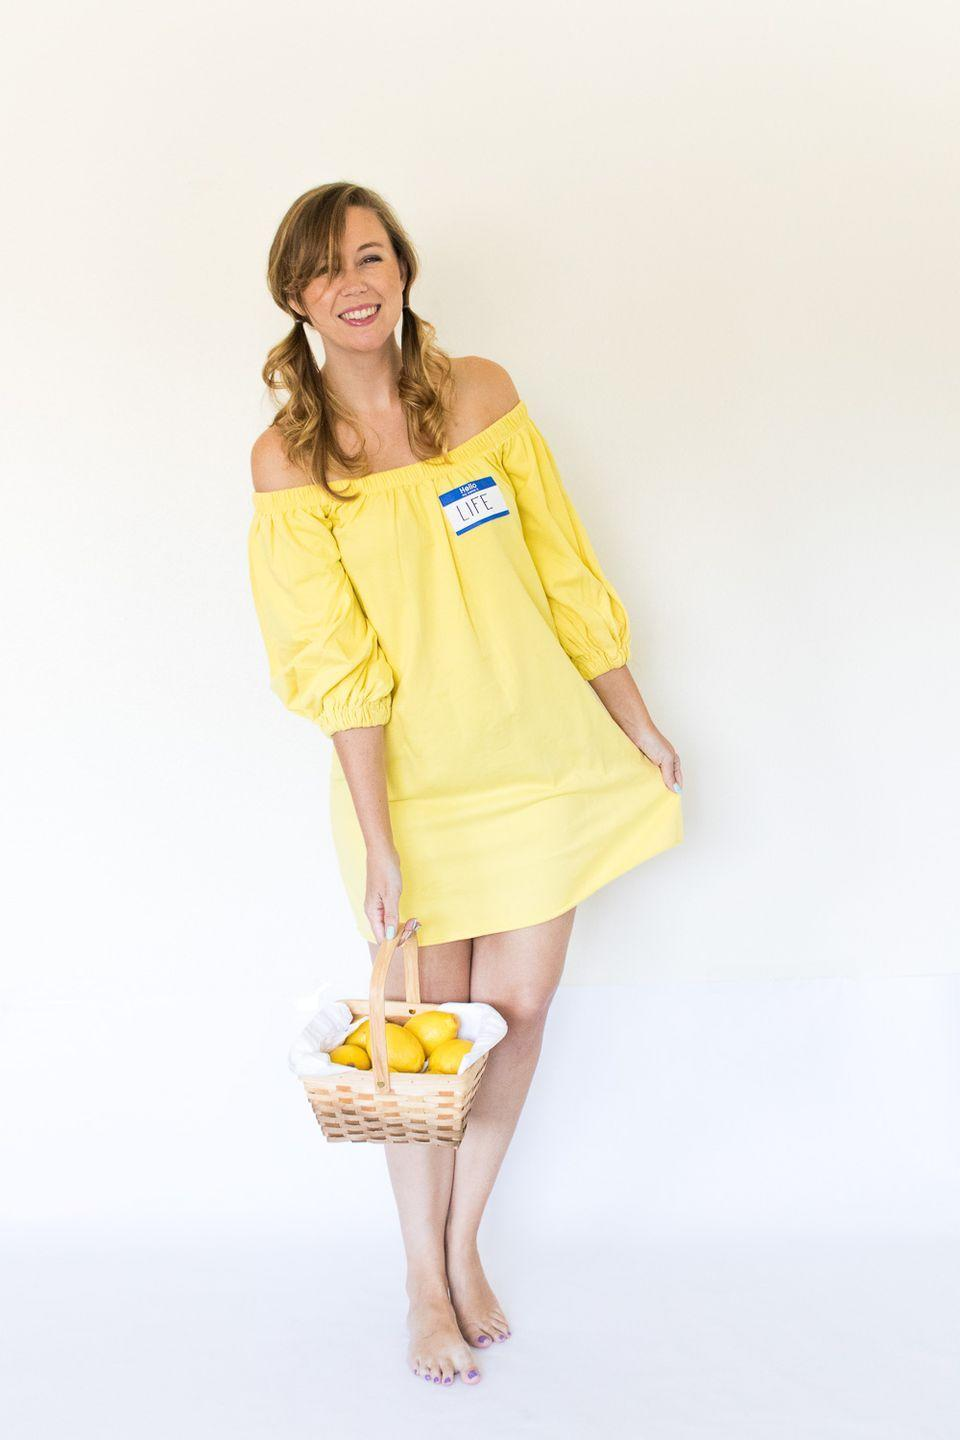 """<p>When life gives you lemons, make this creative Halloween costume! </p><p><strong>Get the tutorial at <a href=""""http://www.clubcrafted.com/2017/10/24/4-last-minute-idiom-halloween-costumes/"""" rel=""""nofollow noopener"""" target=""""_blank"""" data-ylk=""""slk:Club Crafted"""" class=""""link rapid-noclick-resp"""">Club Crafted</a>.</strong></p><p><strong><a class=""""link rapid-noclick-resp"""" href=""""https://www.amazon.com/cailami-Womens-Summer-Dresses-Pockets/dp/B0923Y9D4L/ref=sr_1_5?tag=syn-yahoo-20&ascsubtag=%5Bartid%7C10050.g.21600836%5Bsrc%7Cyahoo-us"""" rel=""""nofollow noopener"""" target=""""_blank"""" data-ylk=""""slk:SHOP YELLOW DRESS"""">SHOP YELLOW DRESS</a></strong></p>"""